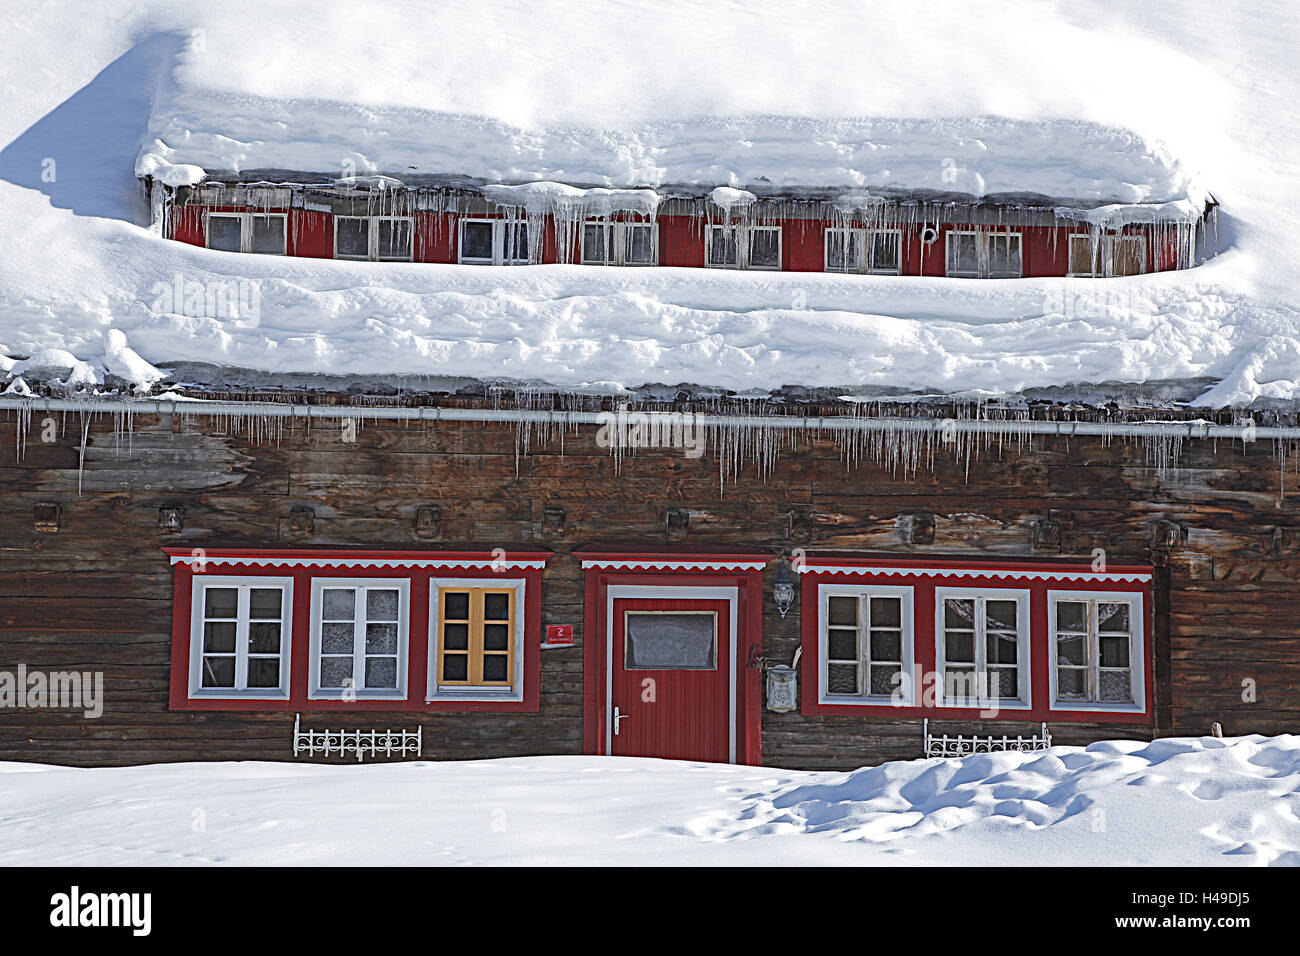 Wooden house, snow, icicle, Stock Photo